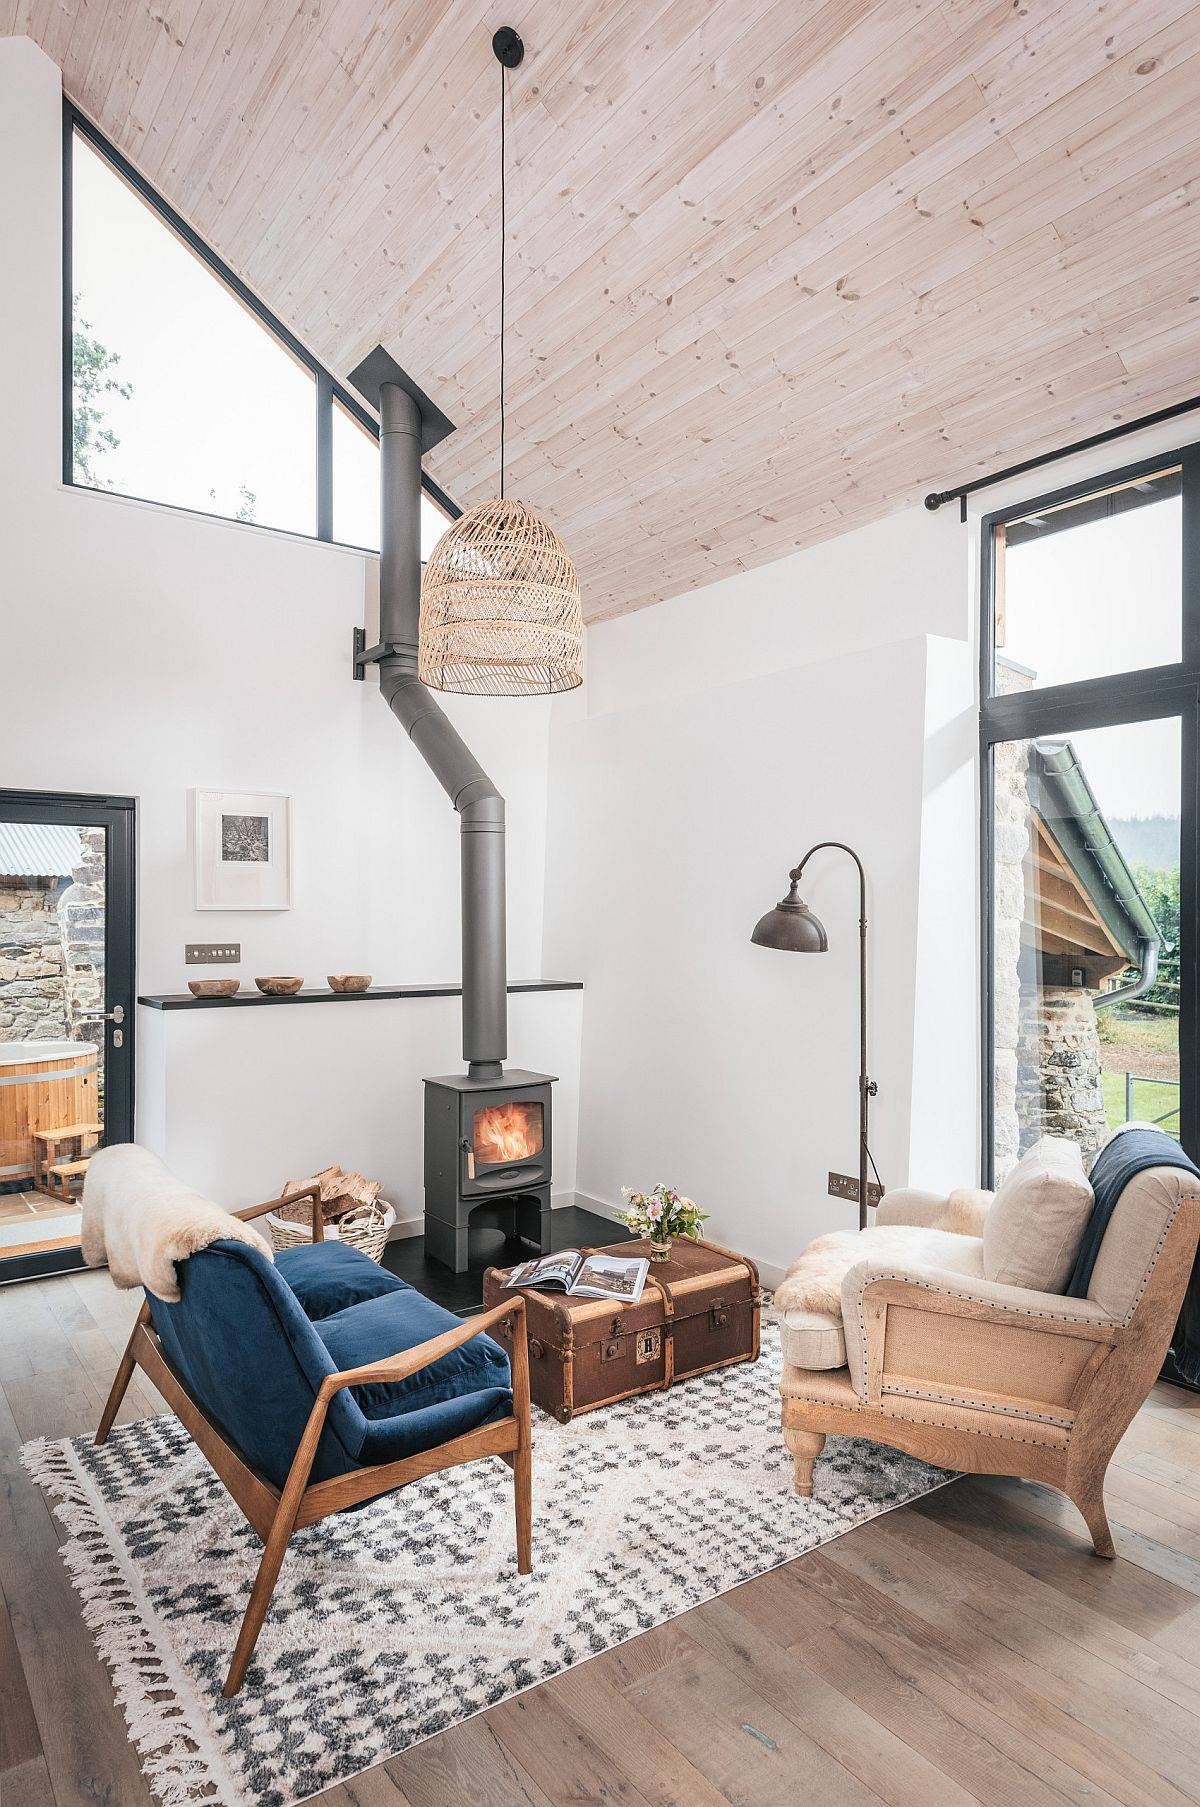 Custom-coffee-table-adds-an-interesting-visual-element-to-this-small-farmhouse-living-room-38699